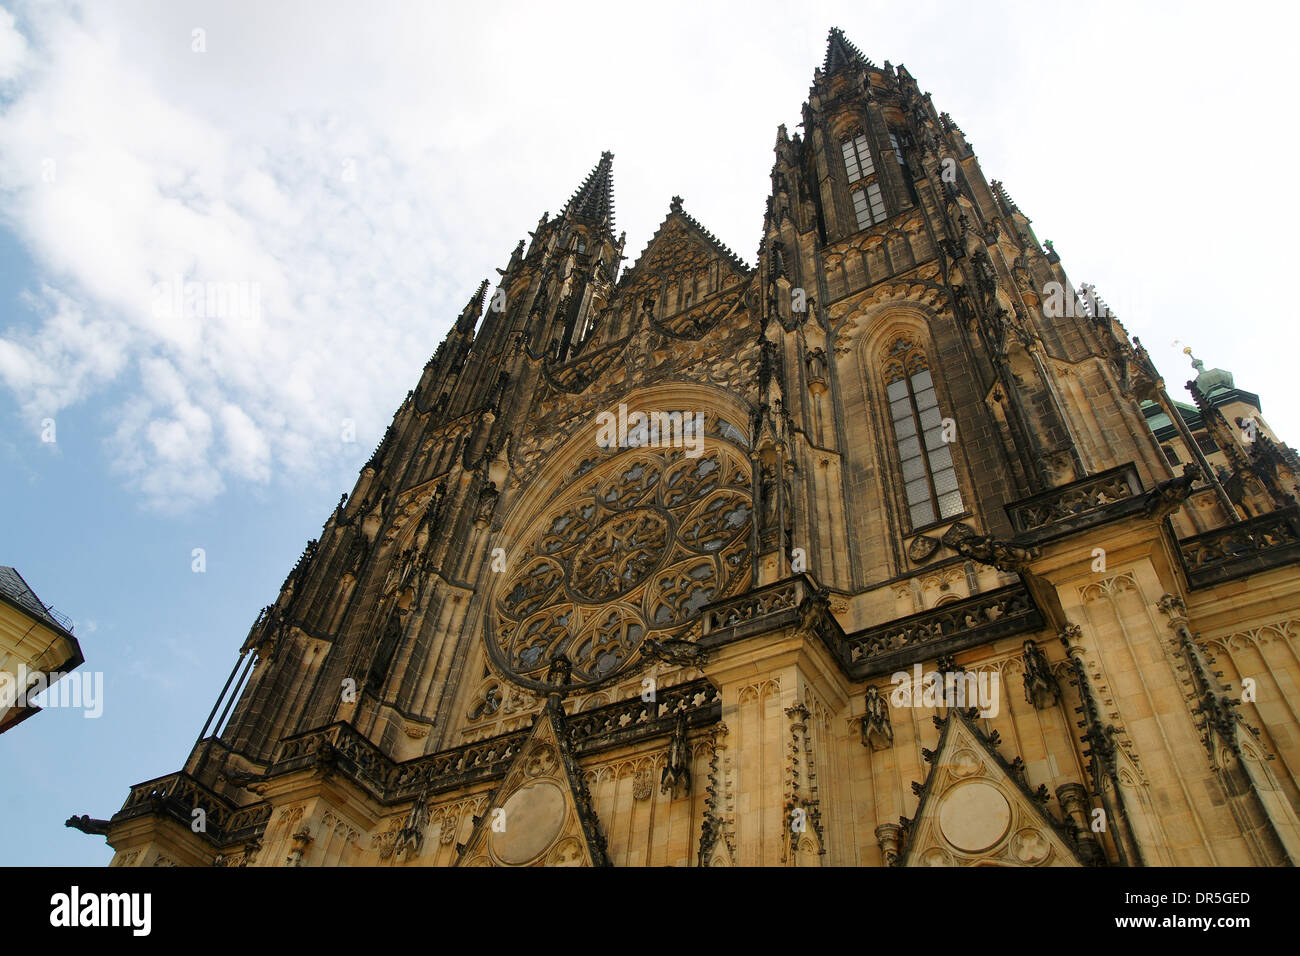 Czech Republic. Prague. St. Vitus Cathedral. West facade. Neo-Gothic style. - Stock Image